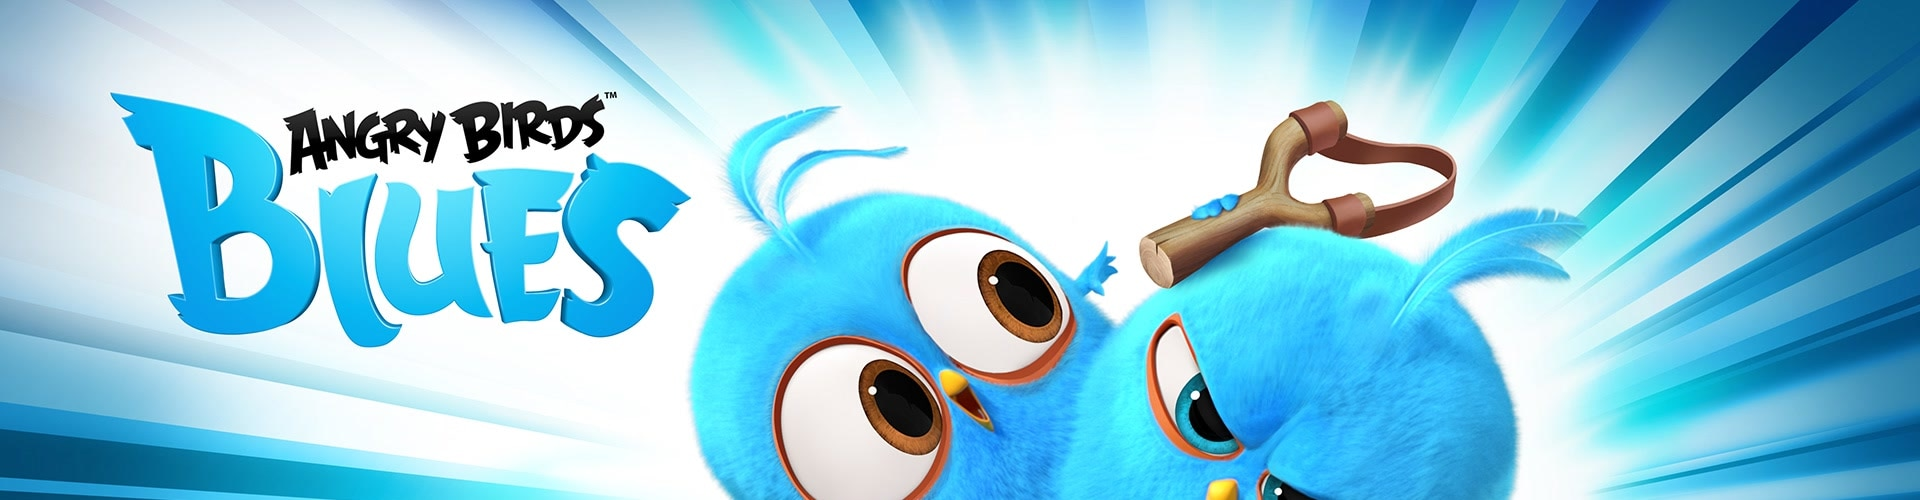 Watch Angry Birds Blues Online